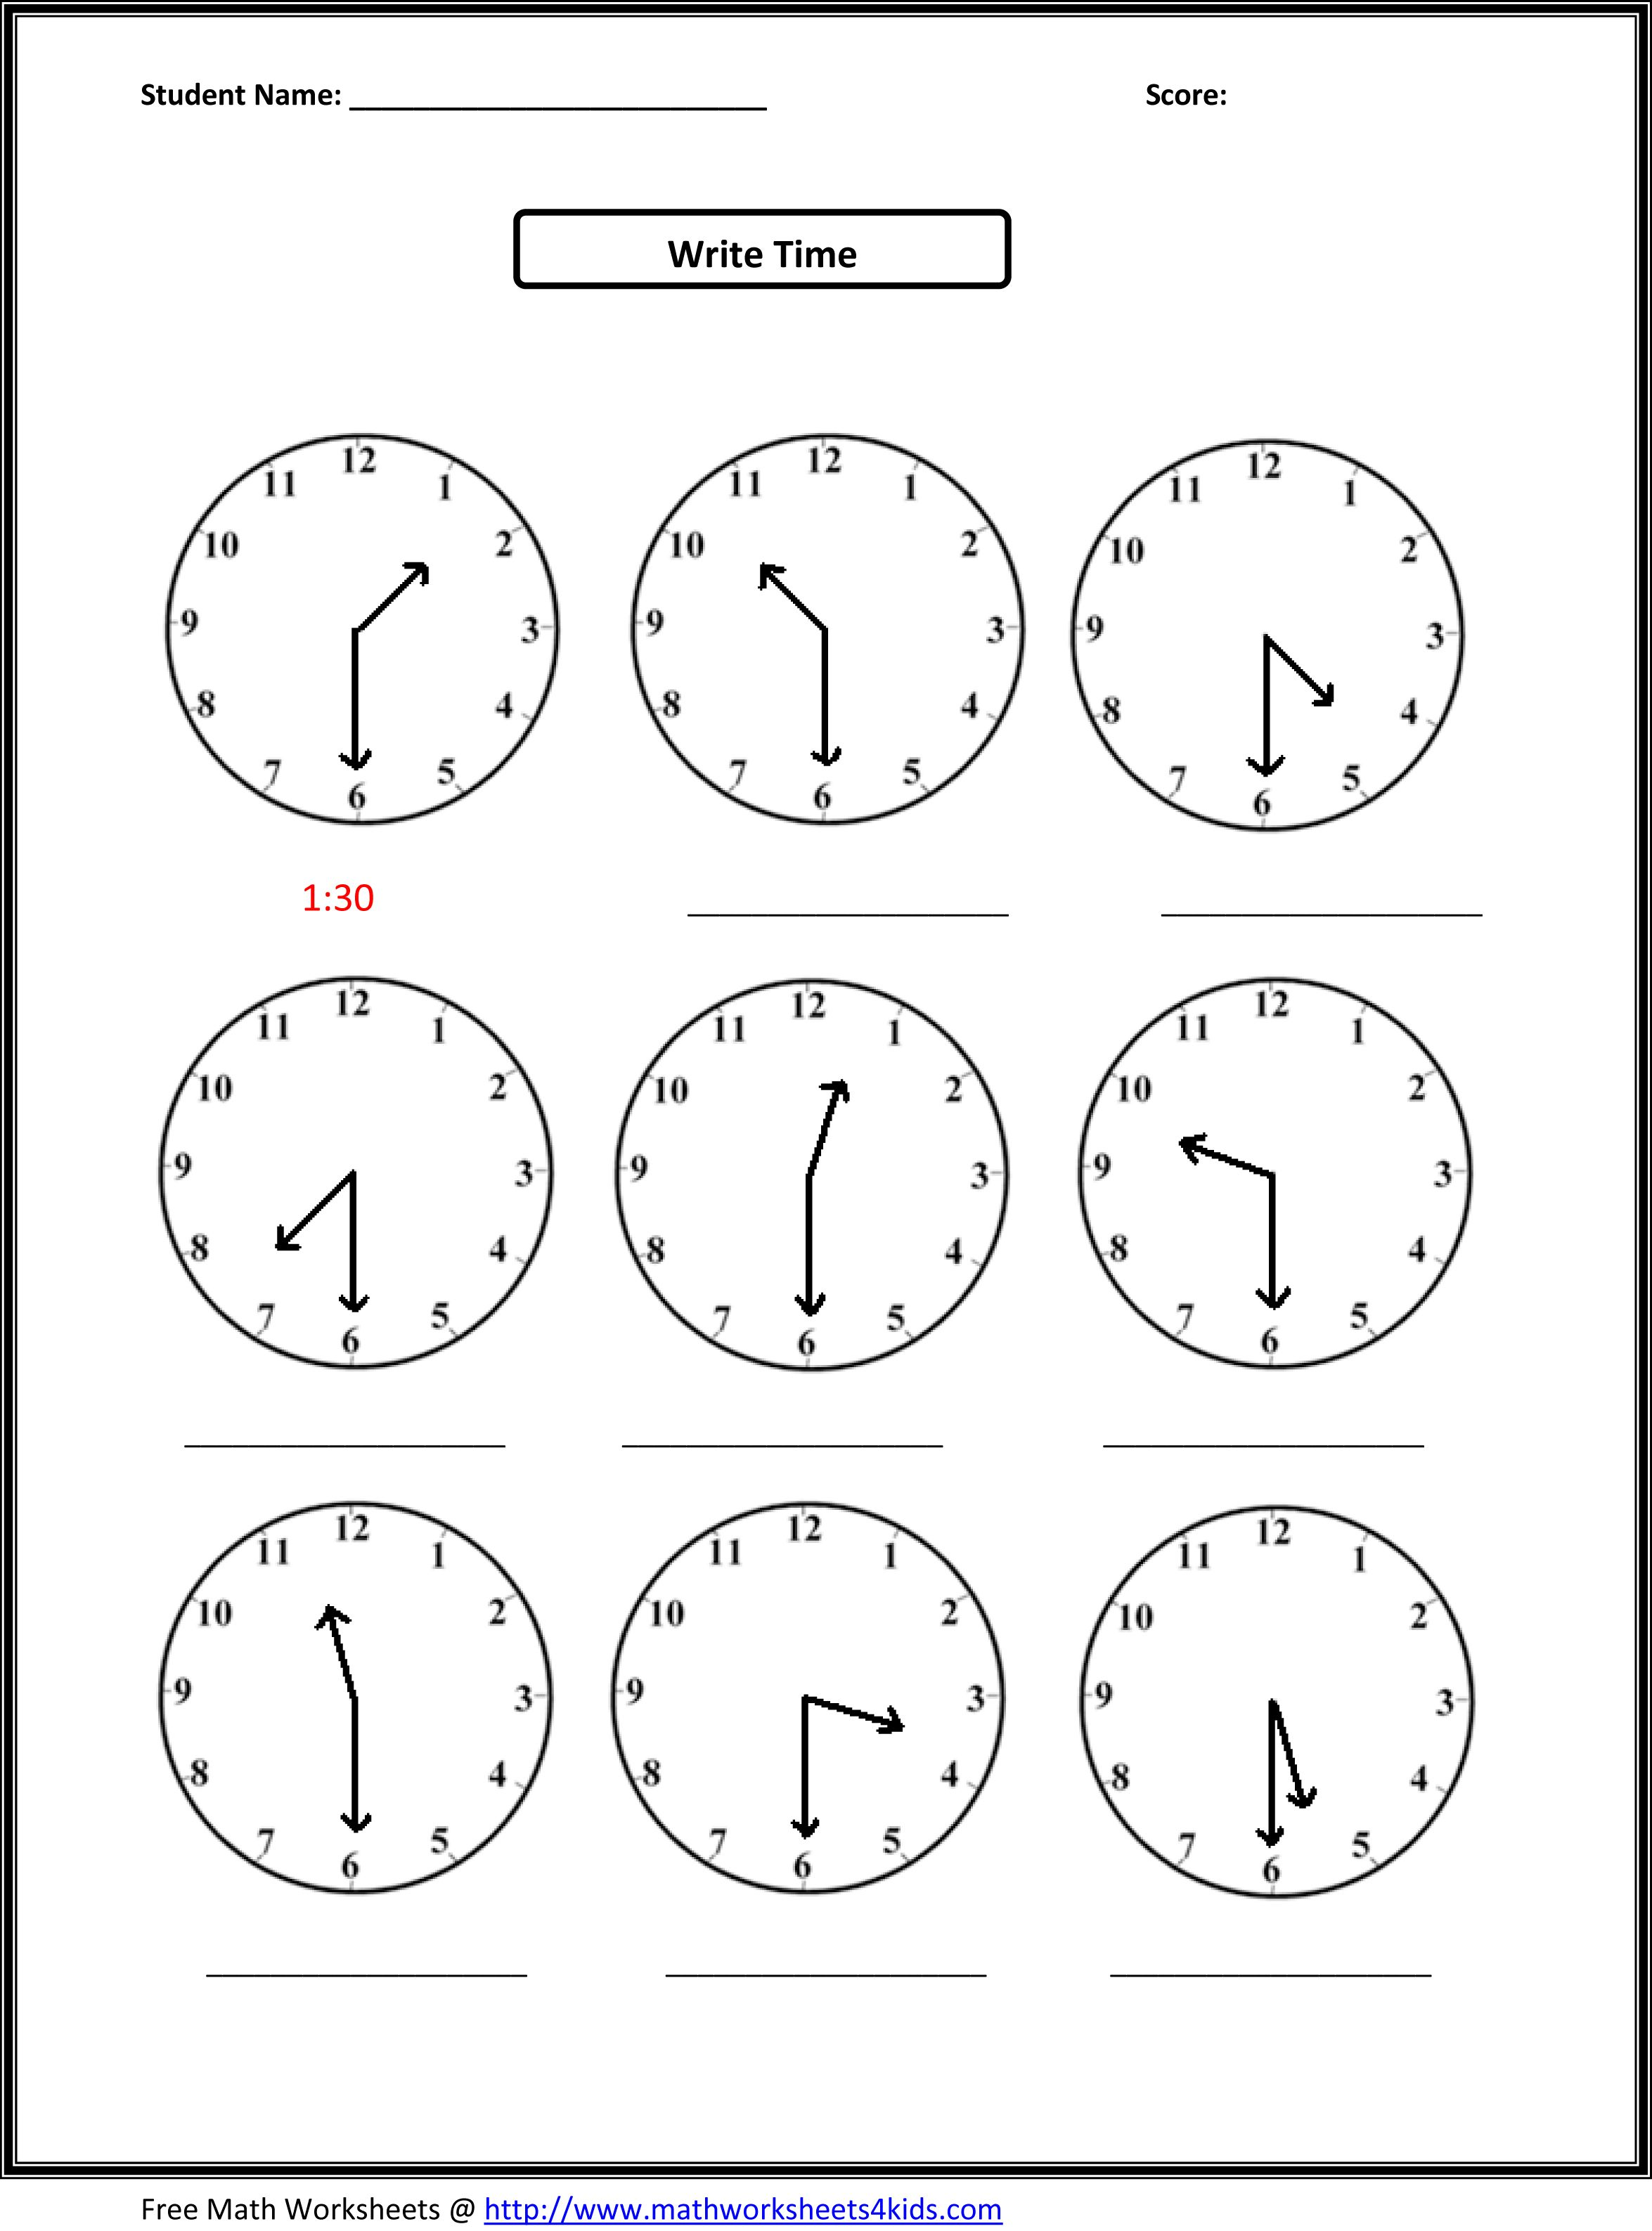 Weirdmailus  Marvellous Worksheet On Time For Grade   Reocurent With Likable Free Printable Telling Time Worksheets Nd Grade  Reocurent With Easy On The Eye Complex Sentences Worksheets Ks Also  Digit Addition And Subtraction With Regrouping Worksheets In Addition Worksheets For Verb Tenses And Maths Worksheets On Fractions As Well As Integers Worksheets For Grade  Additionally Worksheet On Prime Factorization From Reocurentcom With Weirdmailus  Likable Worksheet On Time For Grade   Reocurent With Easy On The Eye Free Printable Telling Time Worksheets Nd Grade  Reocurent And Marvellous Complex Sentences Worksheets Ks Also  Digit Addition And Subtraction With Regrouping Worksheets In Addition Worksheets For Verb Tenses From Reocurentcom